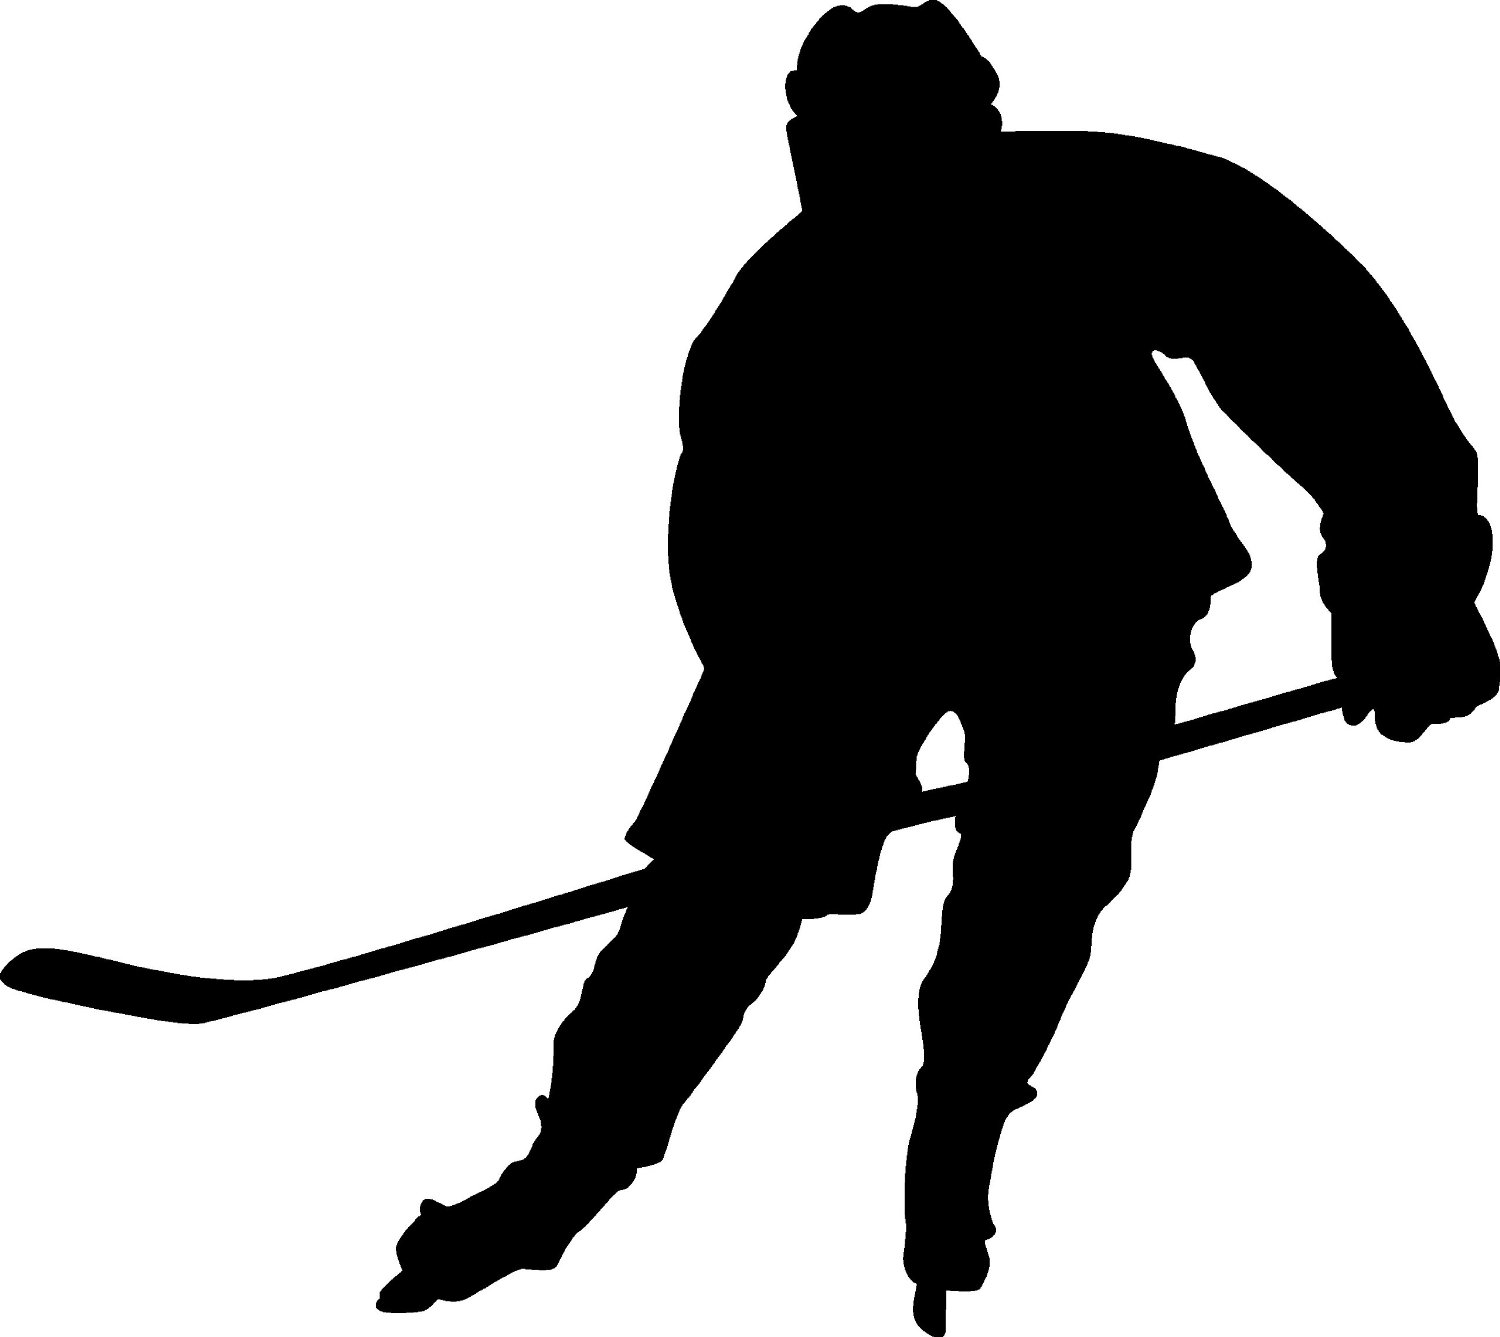 hockey silhouette girl hockey player silhouette at getdrawings free download hockey silhouette